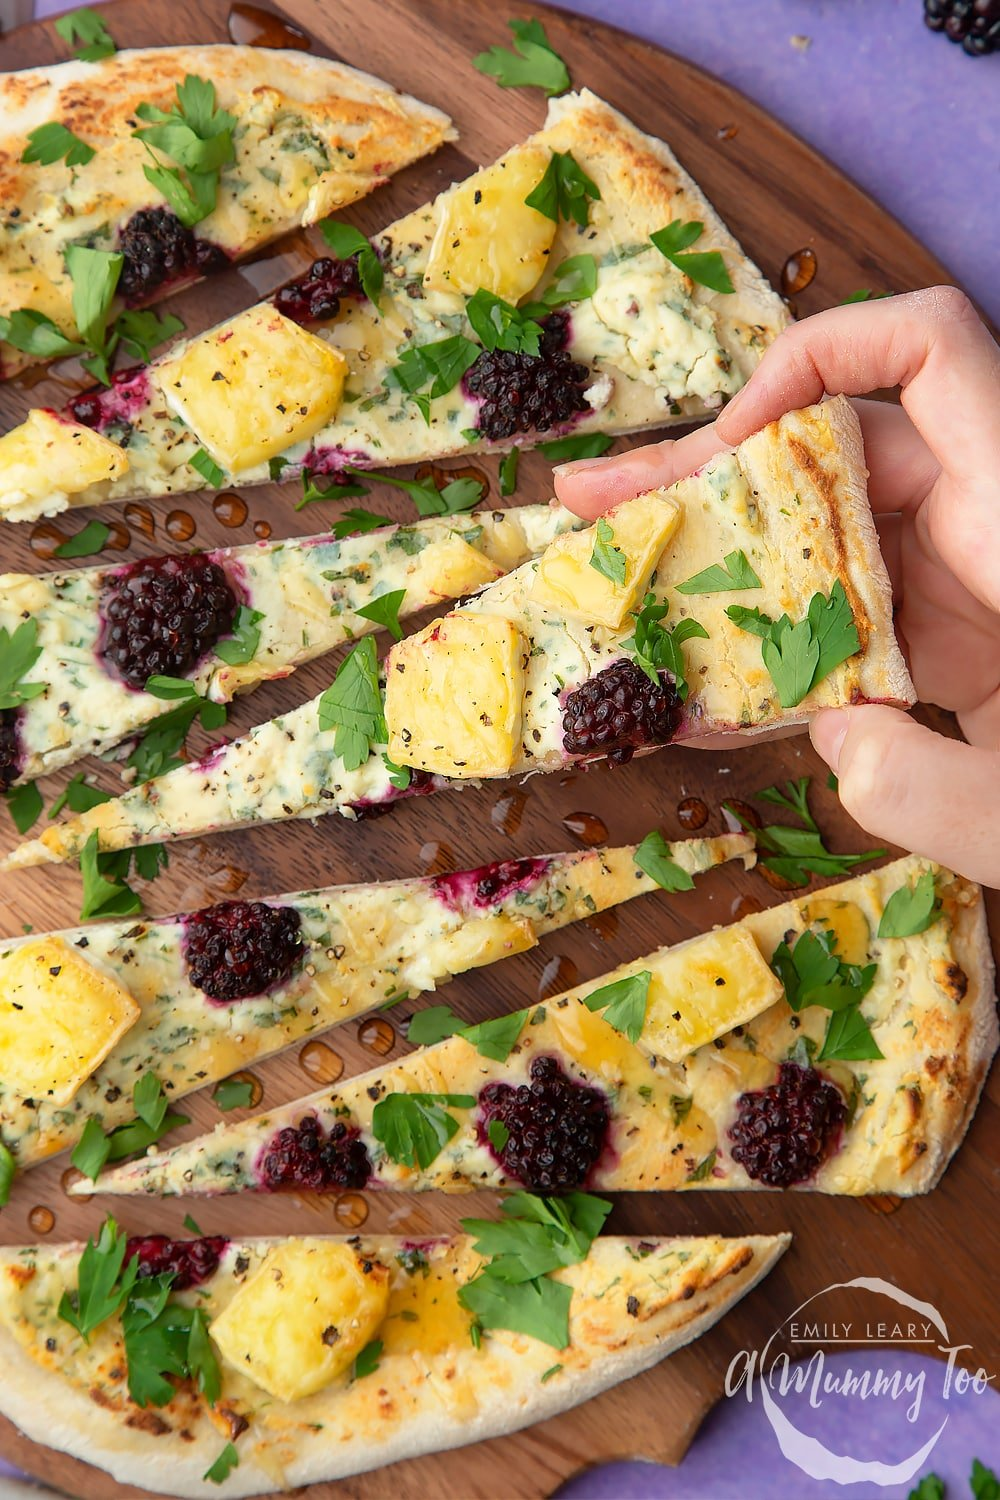 A hand picking up a slice of brie and blackberry pizza on a dark wooden board.